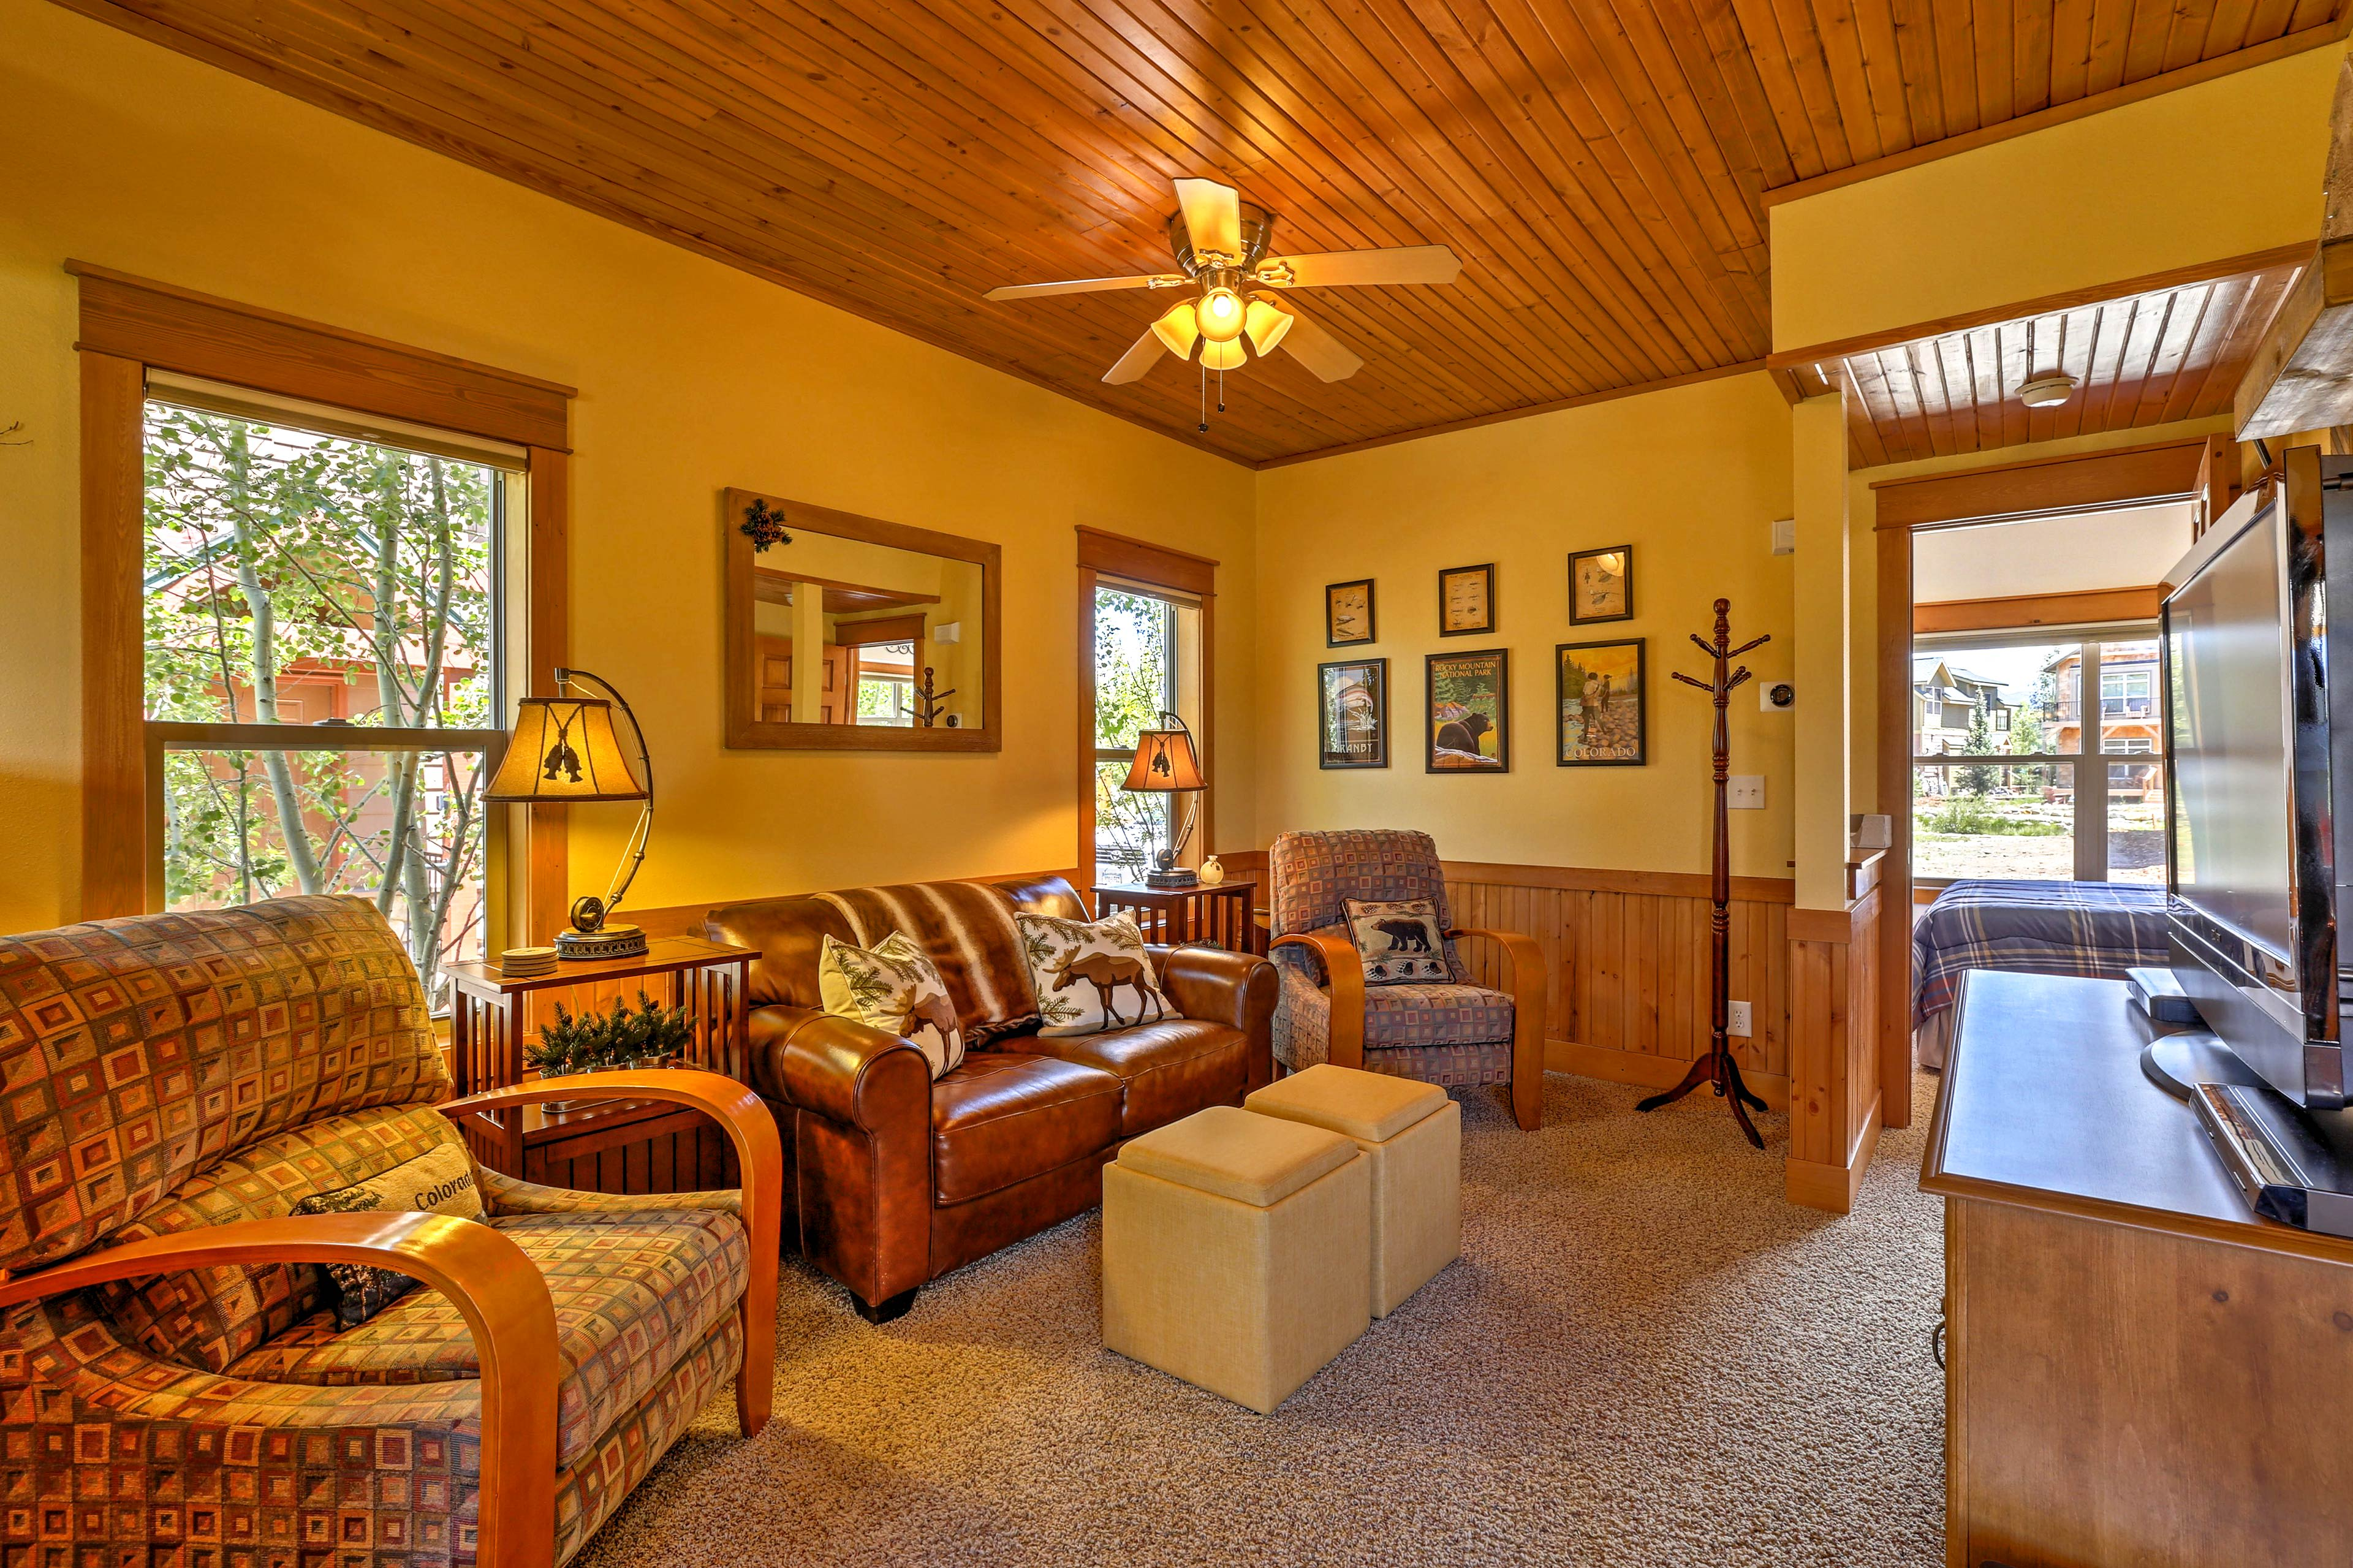 Wood wainscoting and rustic detail create a cozy interior space.